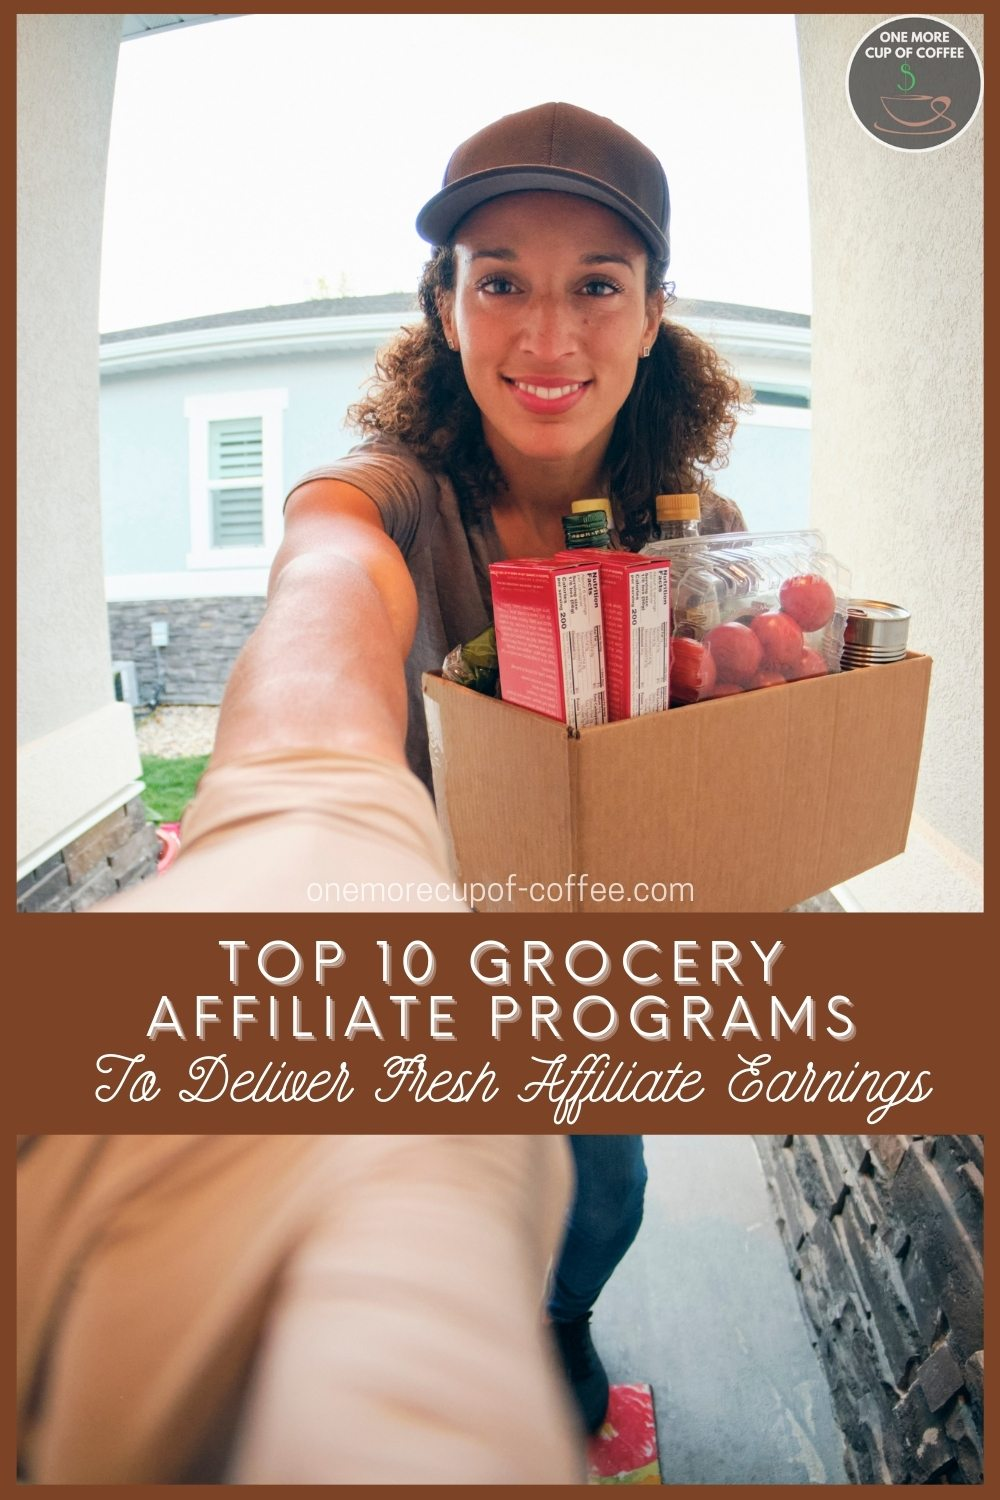 """woman carrying grocery deliveries pressing on a doorbell, with text overlay """"Top 10 Grocery Affiliate Programs To Deliver Fresh Affiliate Earnings"""""""